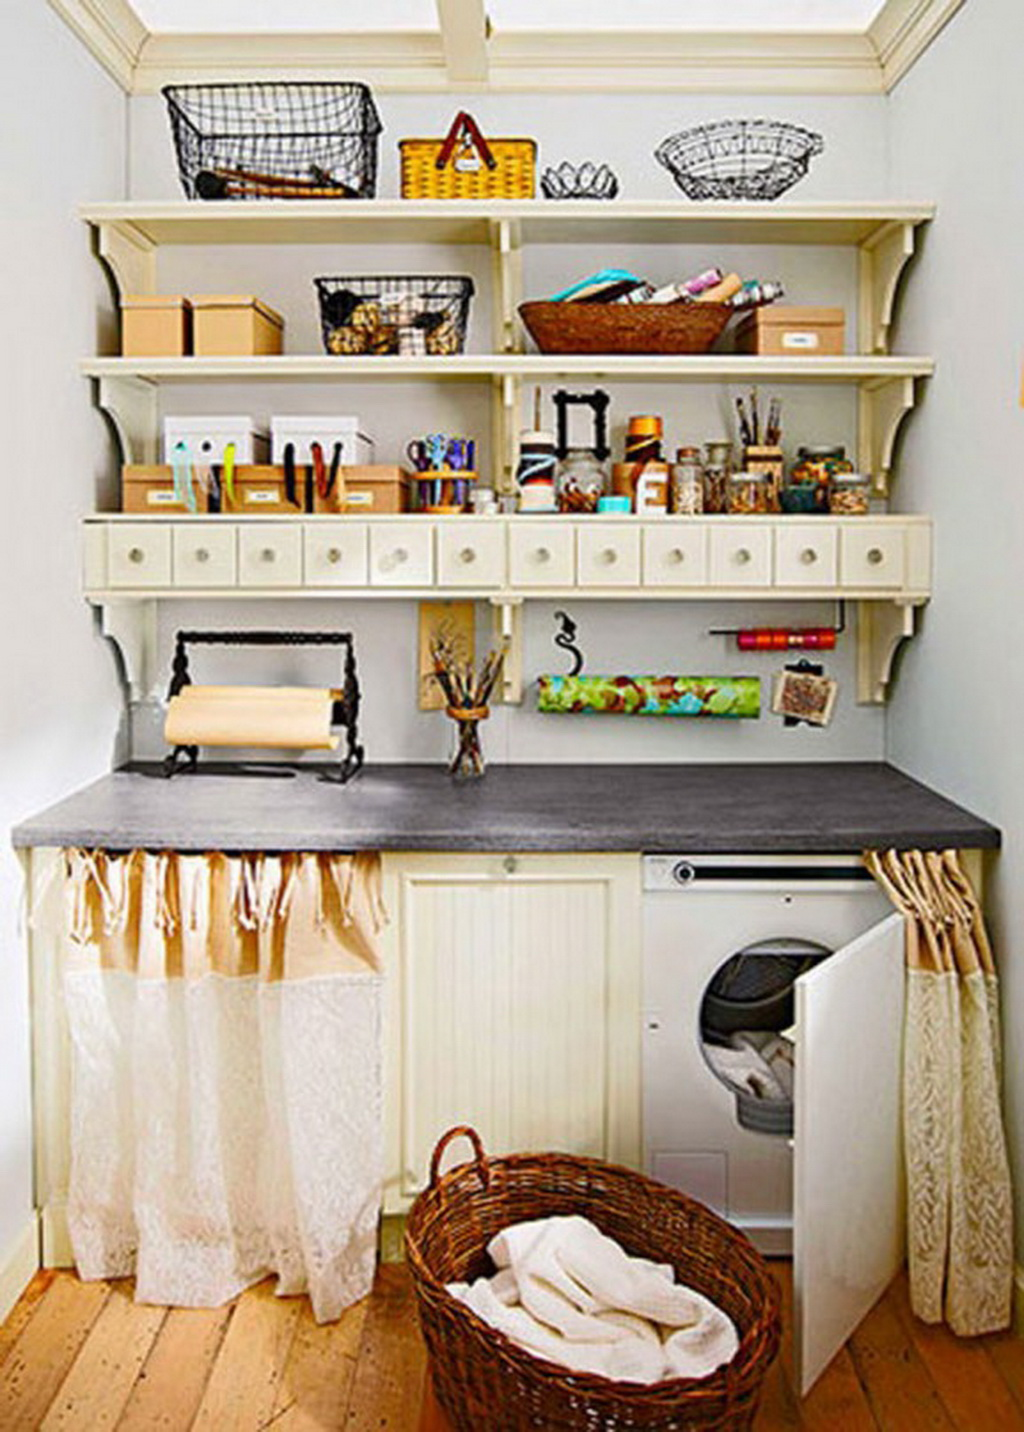 15 Tips to Creating a Laundry Room thats both Charming and Functional